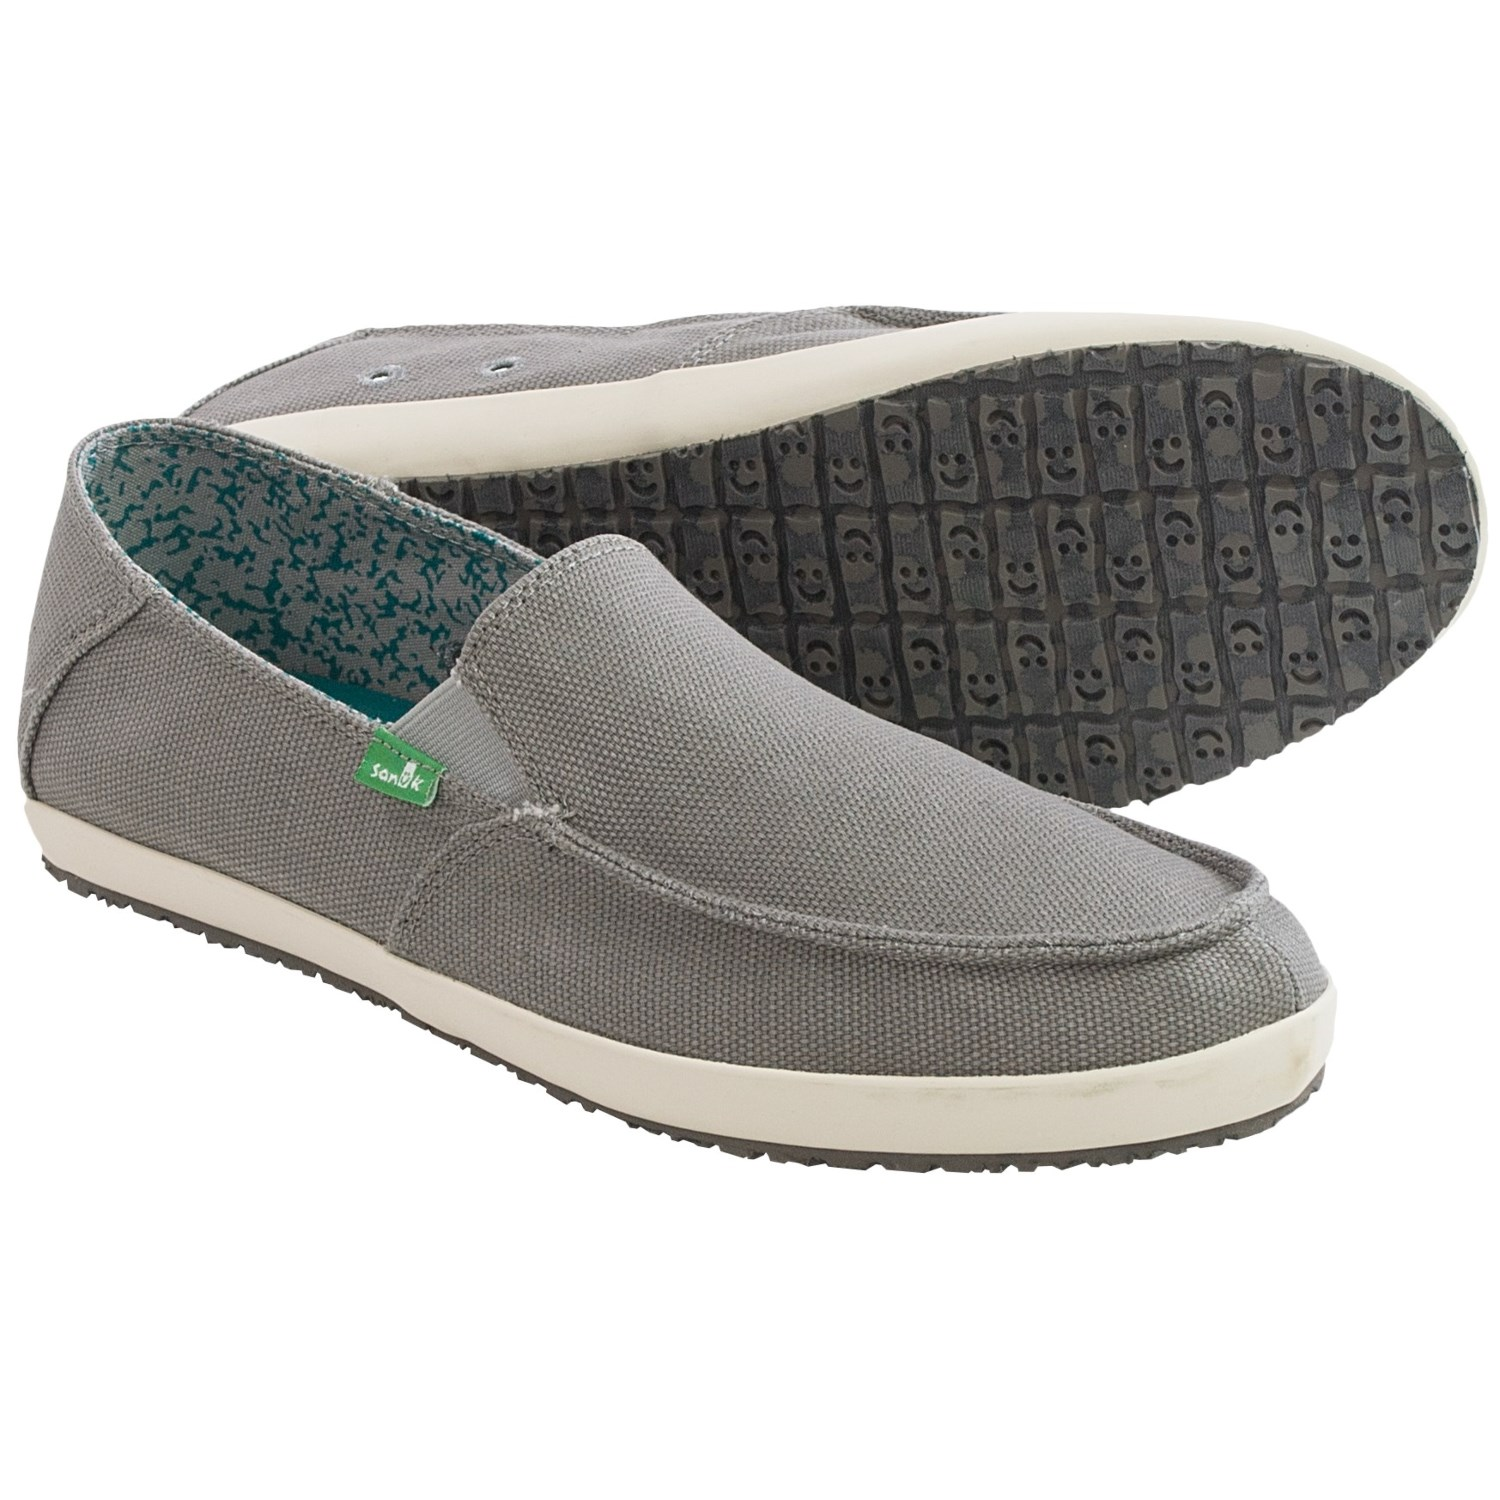 Atlantic Heritage Canvas Men's Baja Slip-ons - Blue - TOMS Slip-ons TOMS Atlantic Heritage Canvas Men 's Baja Slip - ons - Part of the Topanga Collection, the Baja a casual slip - on with twin gores and a vulcanized outsole, is laid-back and up for just about anything.